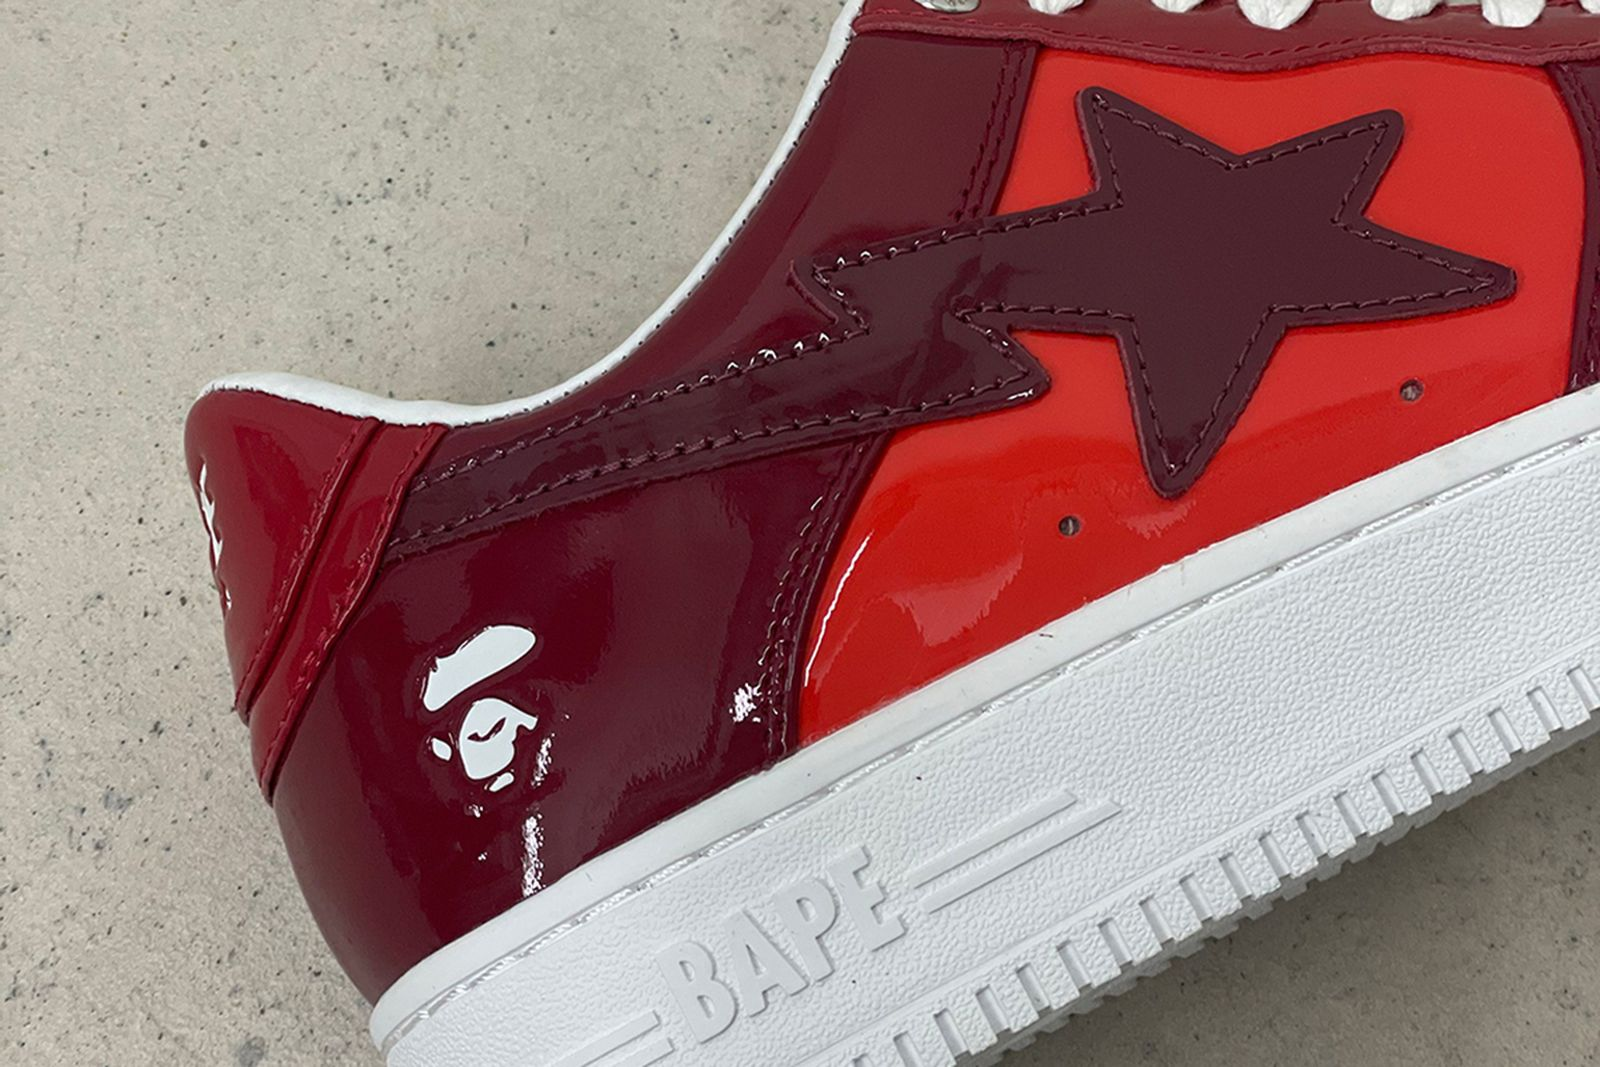 BAPE STA patent leather in red